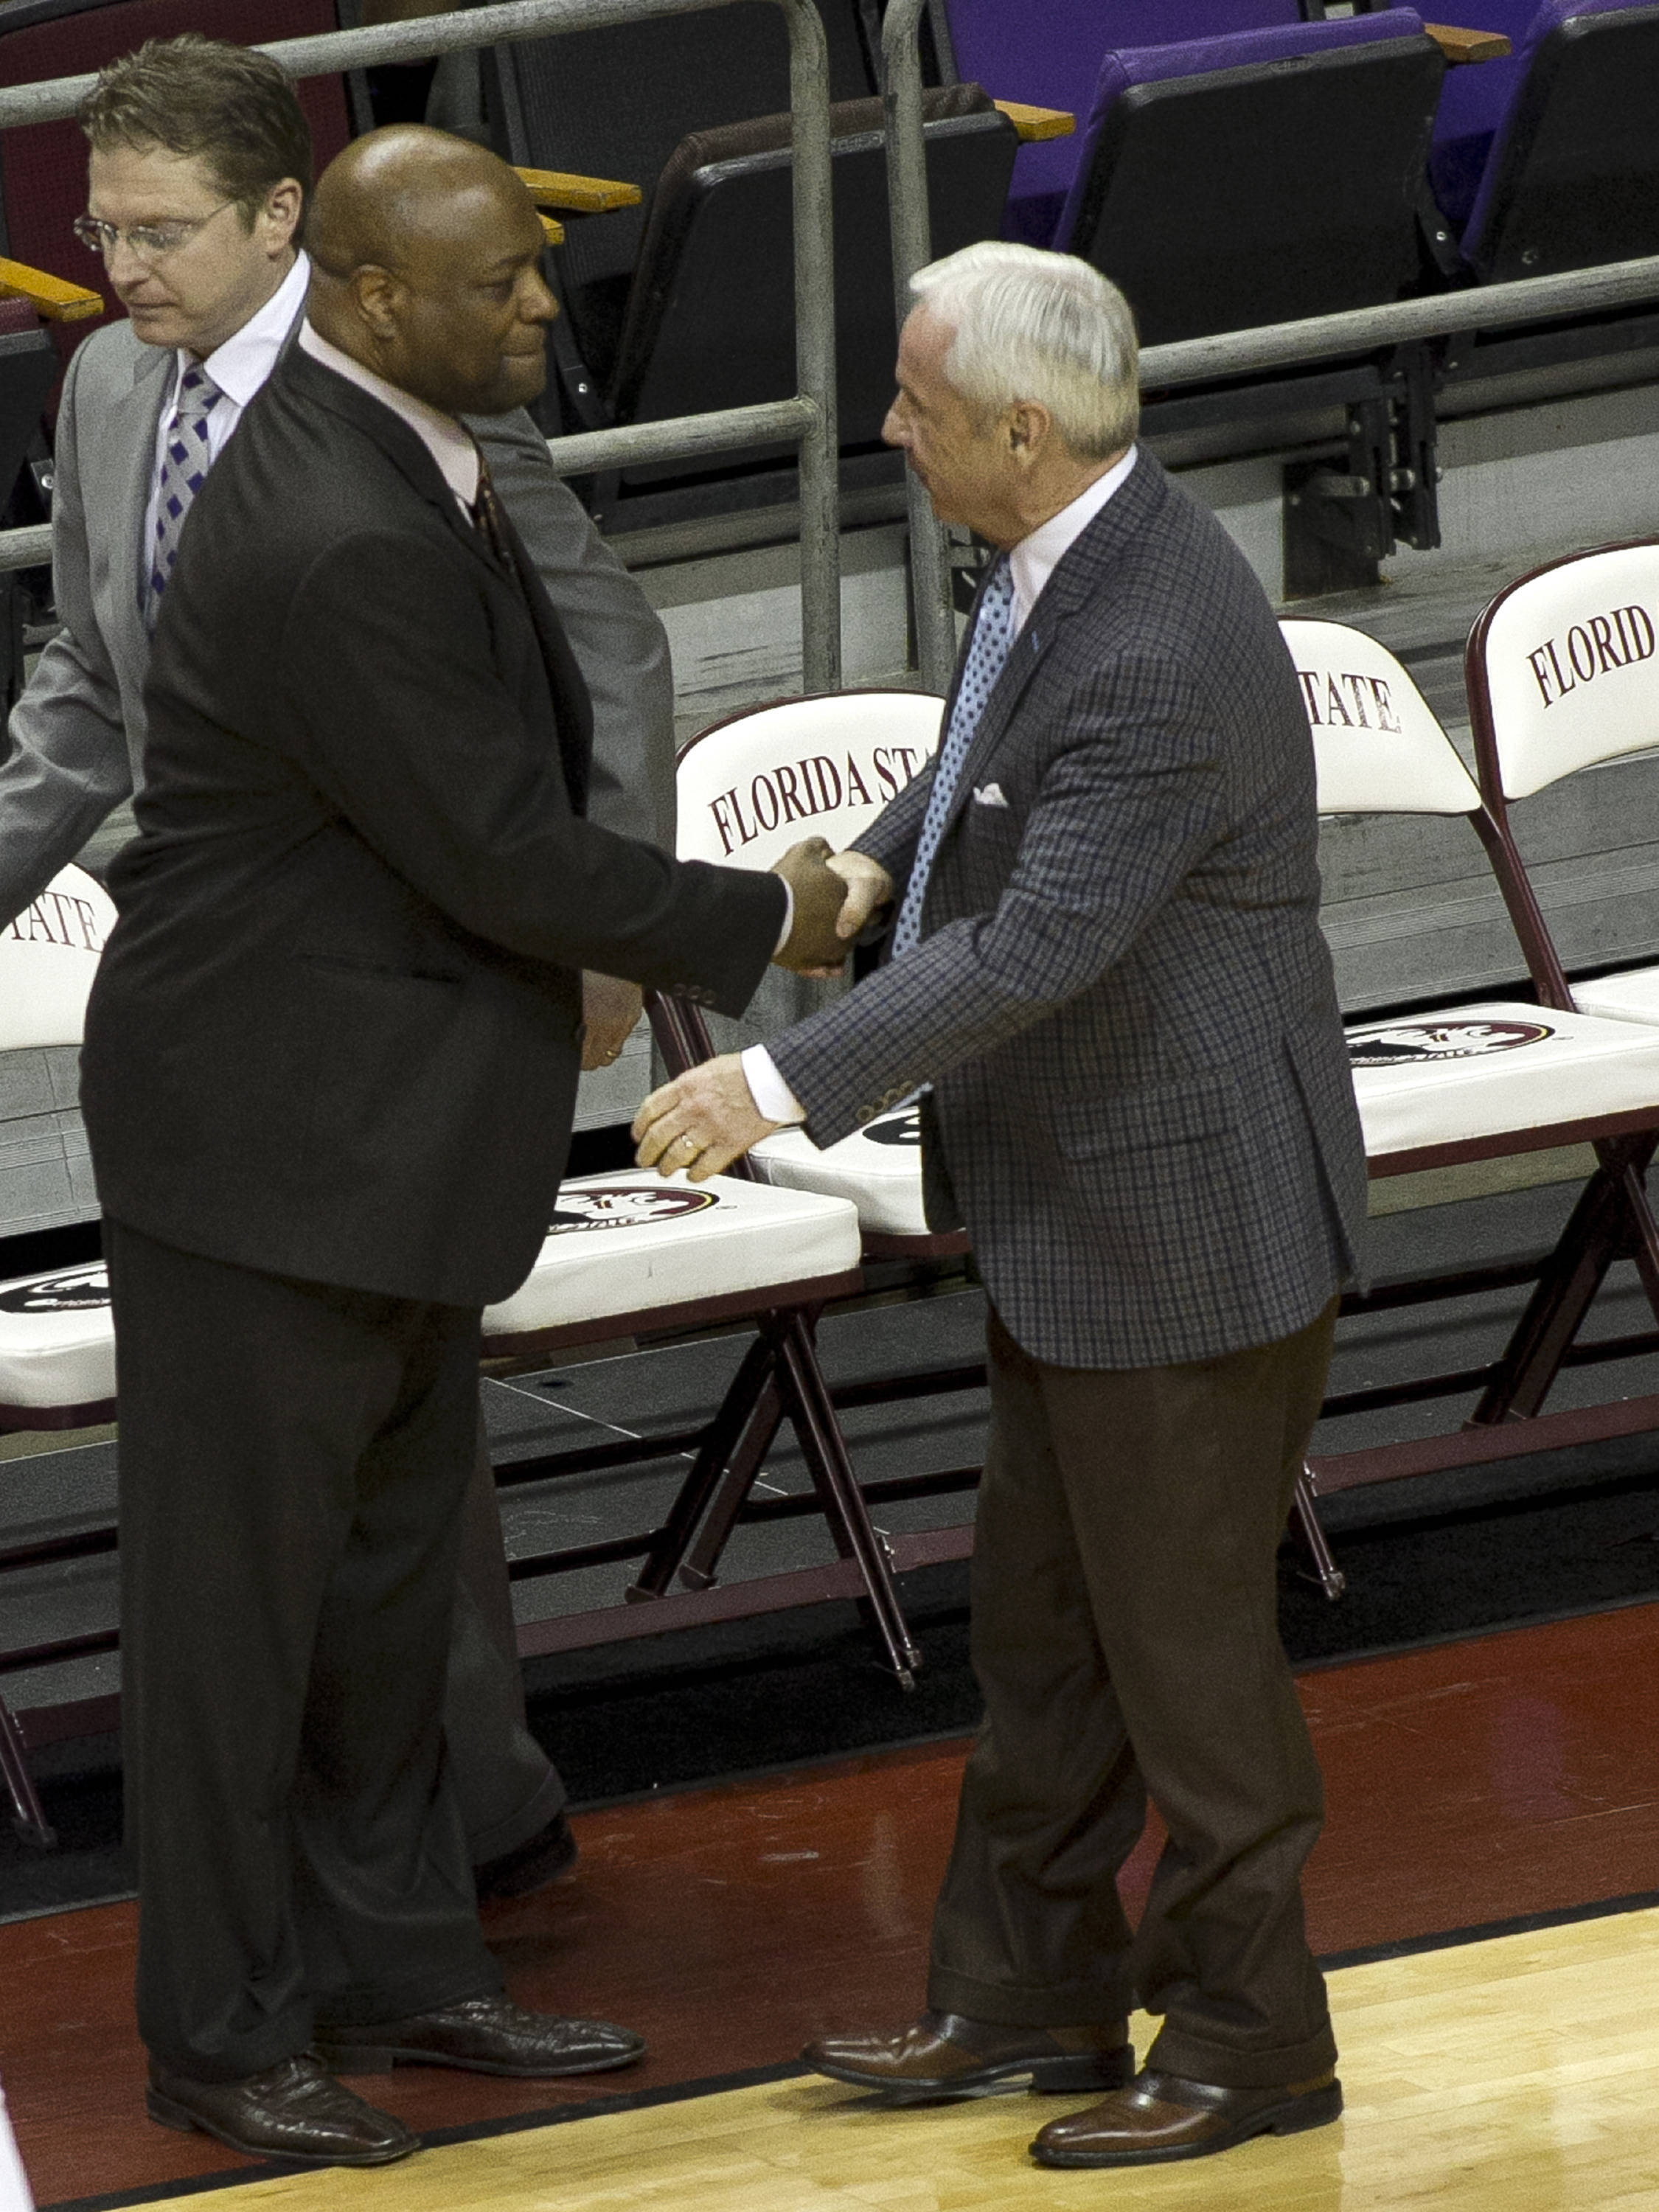 Head Coaches Leonard Hamilton and Roy Williams share a pre-game handshake, FSU vs North Carolina, 2-17-14, (Photo's by Steve Musco)